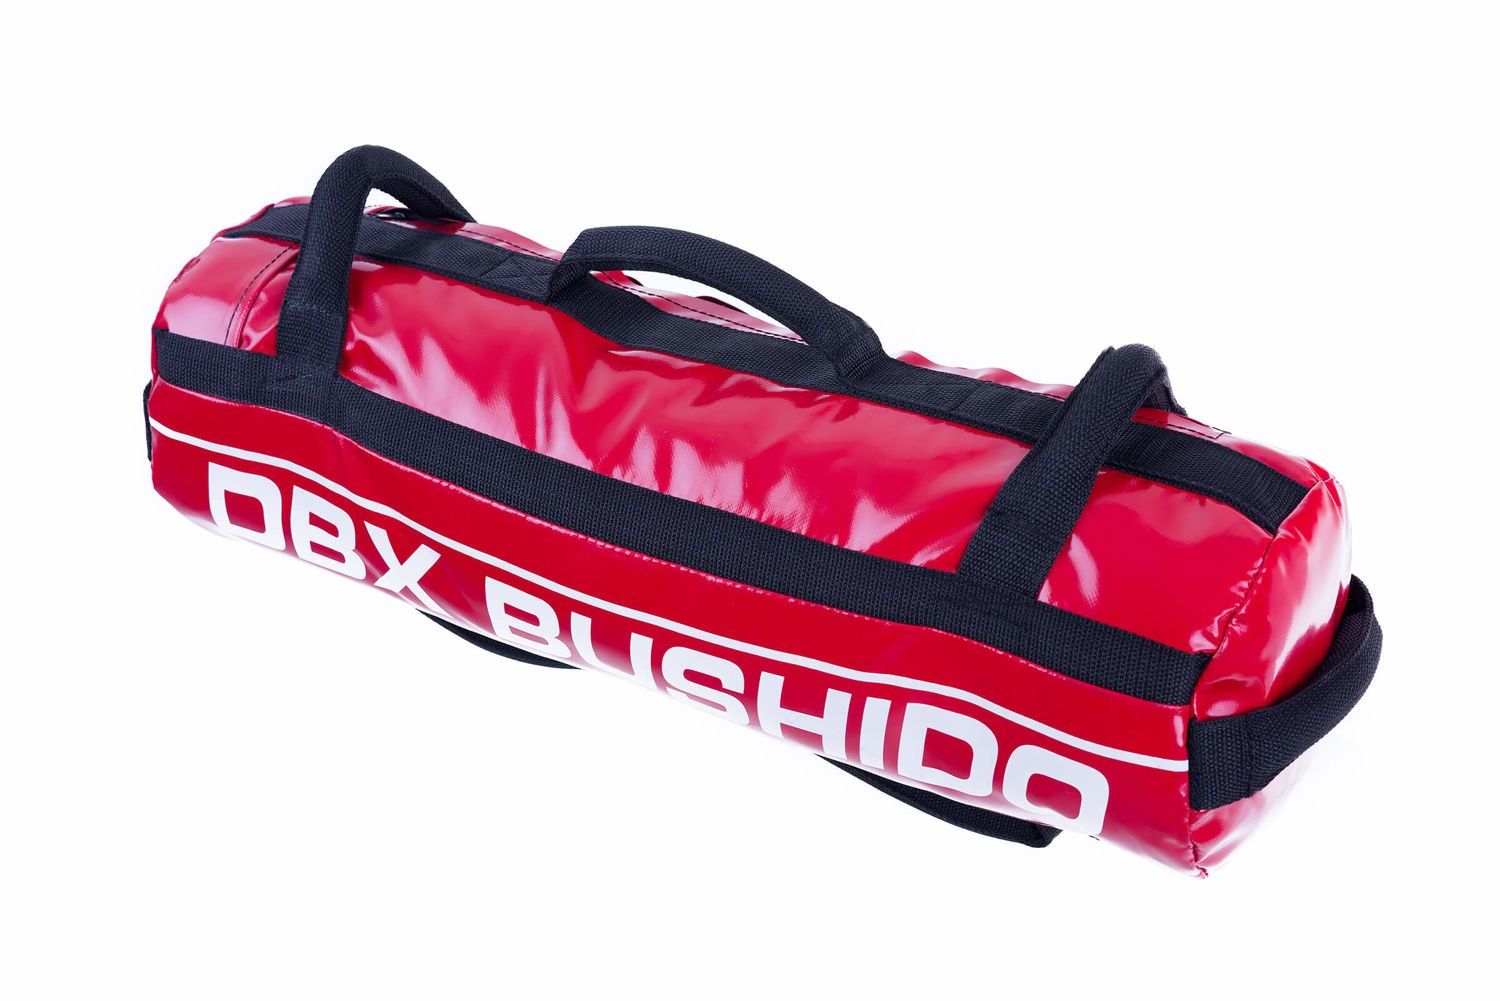 POWER BAG DBX BUSHIDO - PRZYRZĄD DO CROSS TRENINGU - 15 KG